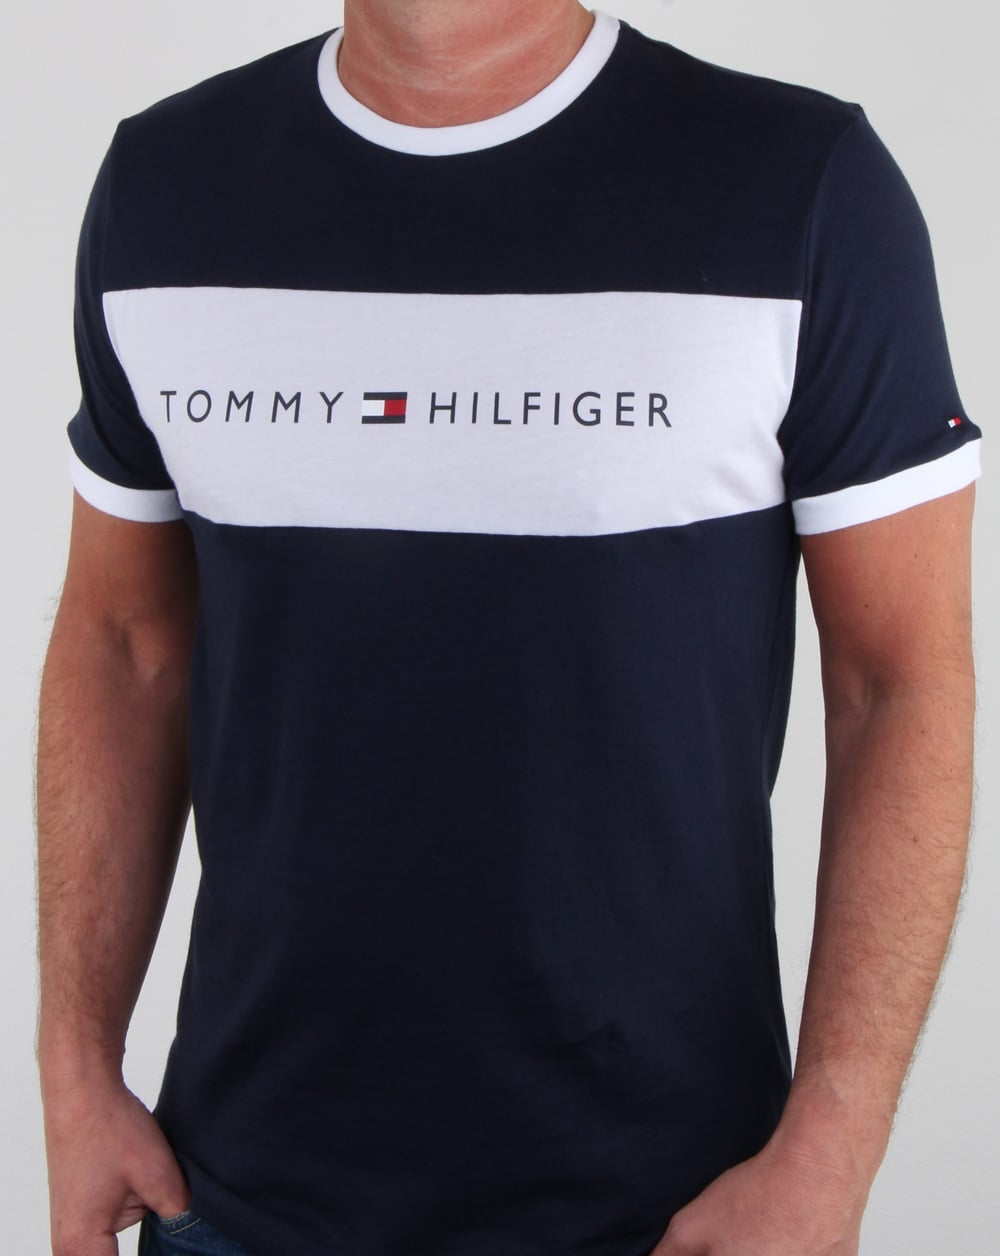 704eba8b1 Tommy Hilfiger Flag Logo T Shirt Navy, Mens, Tee, Cotton, Crew, Tommy